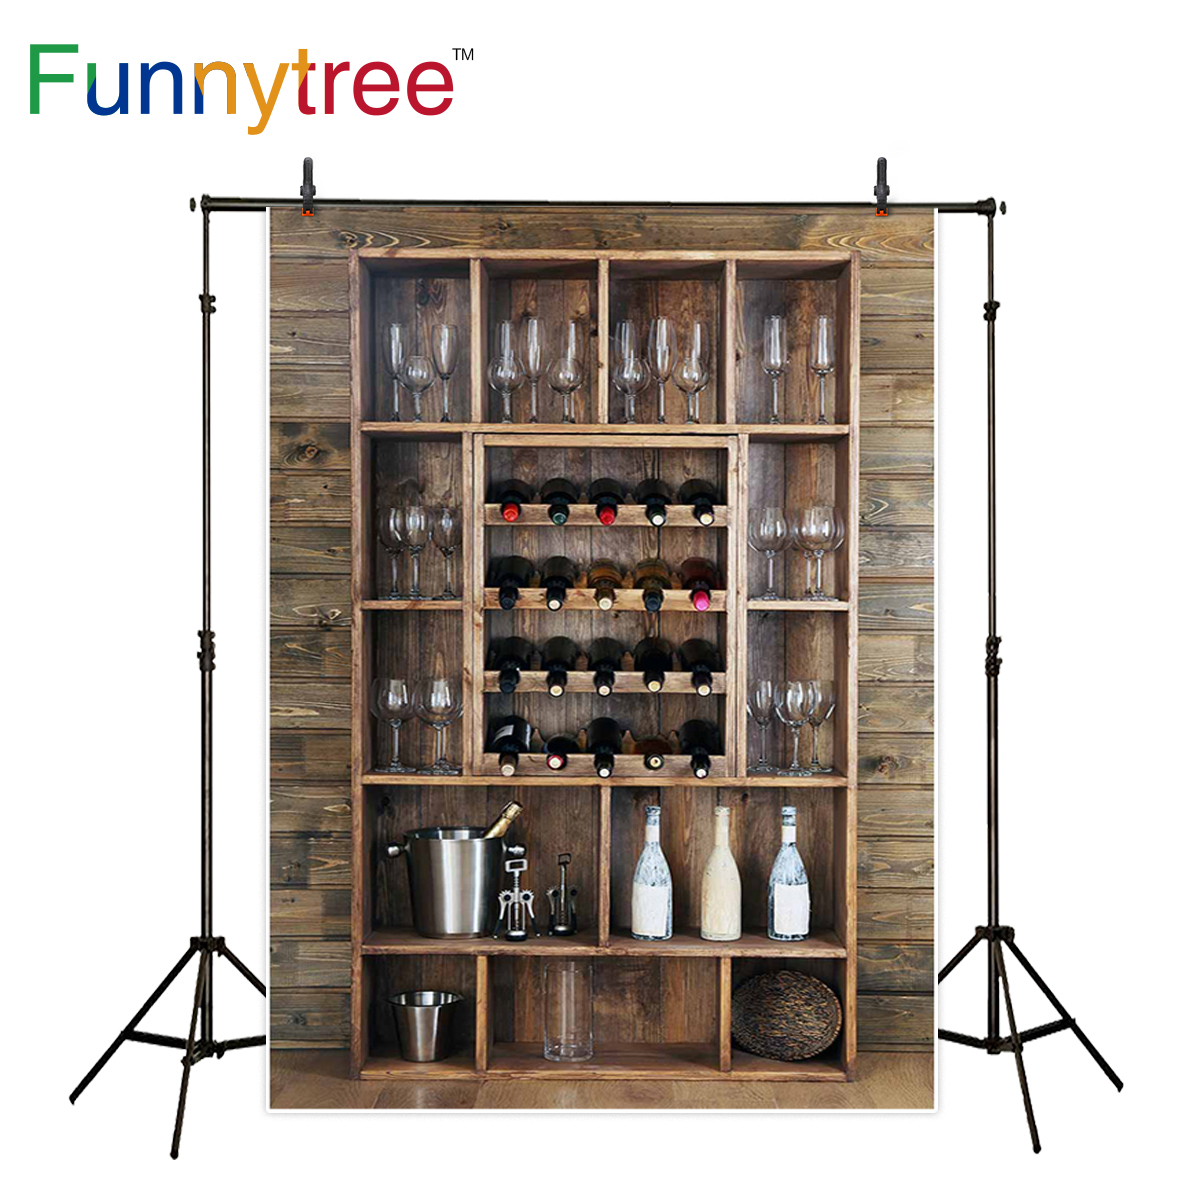 Funnytree photography backdrops Shelving with wine bottles glasses on wooden wall background photocall photography studio funds